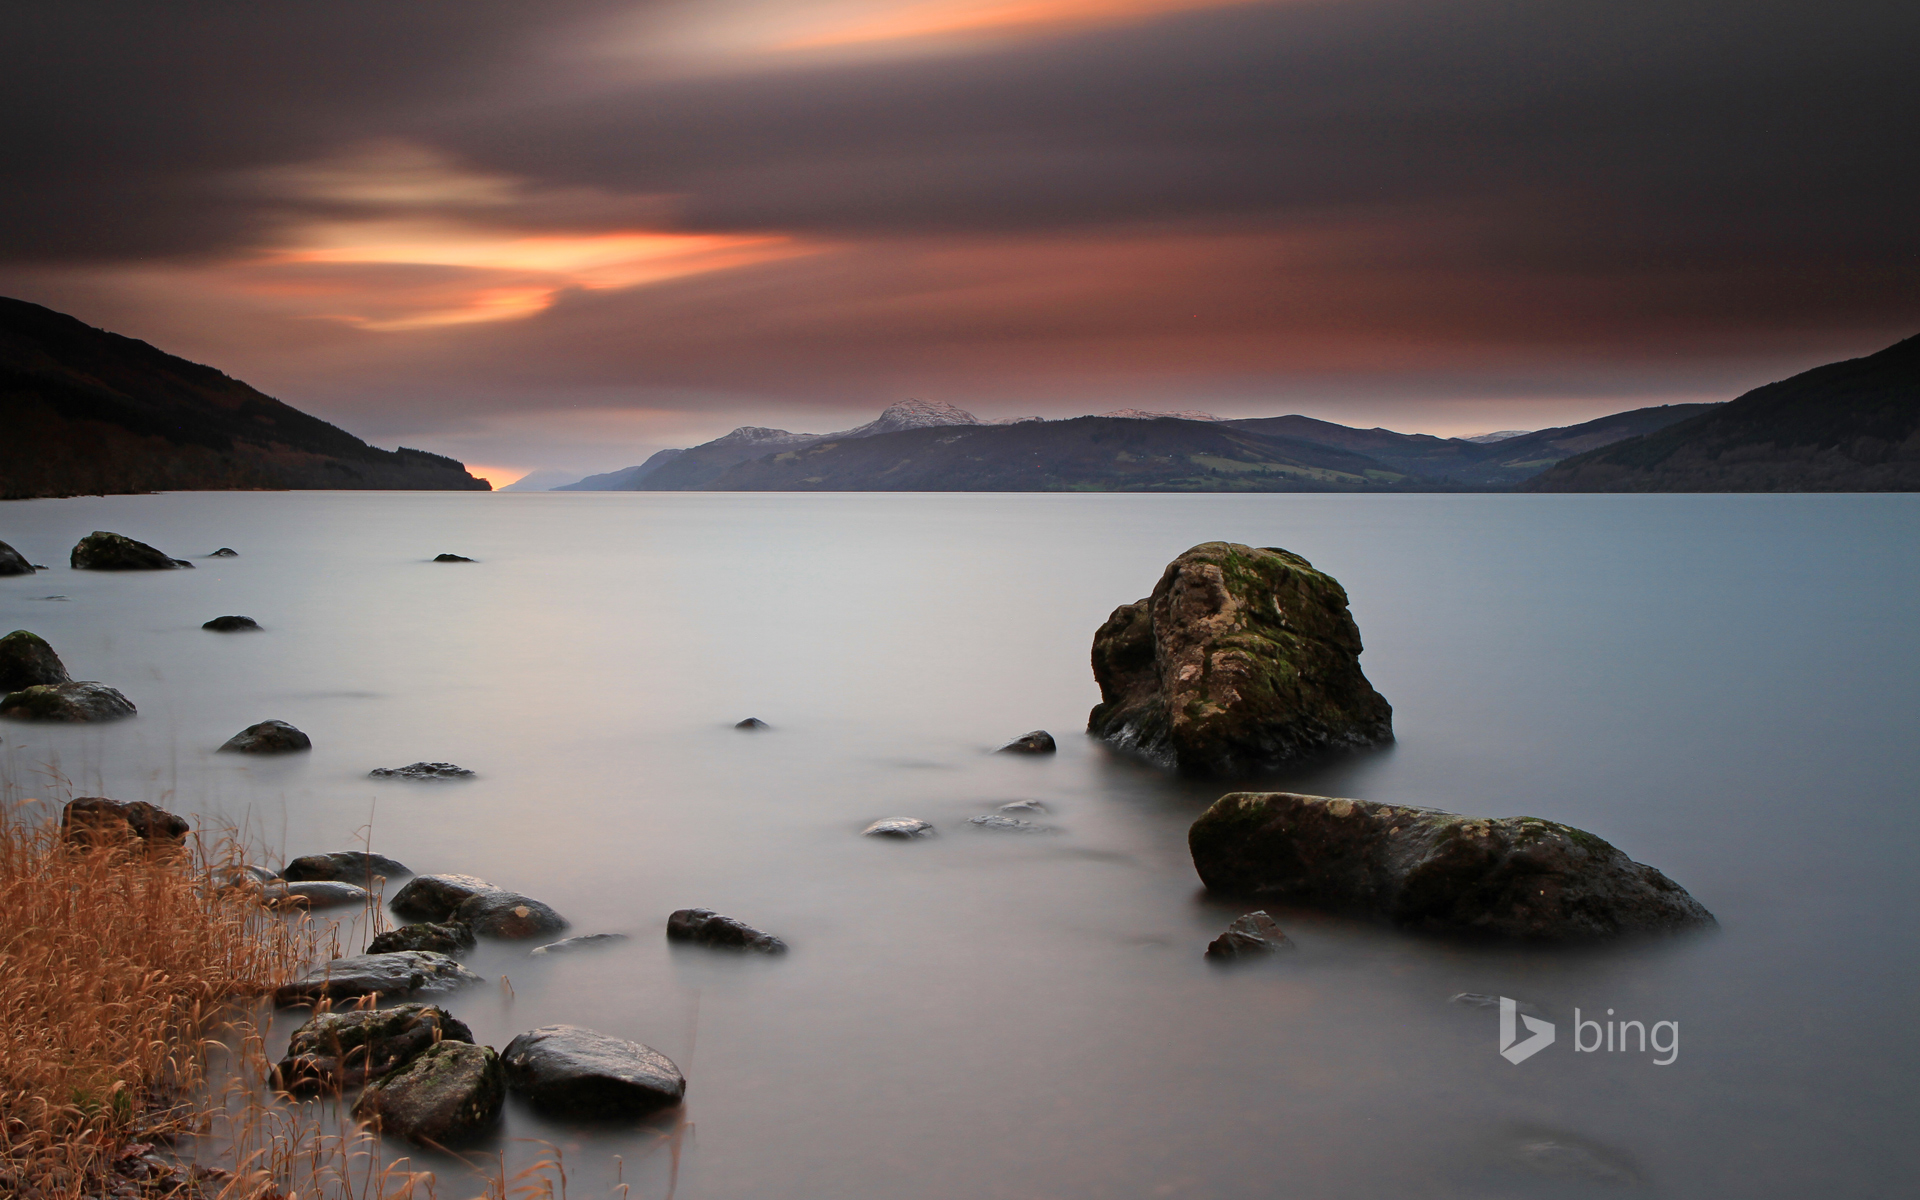 Loch Ness in the Scottish Highlands at sunset